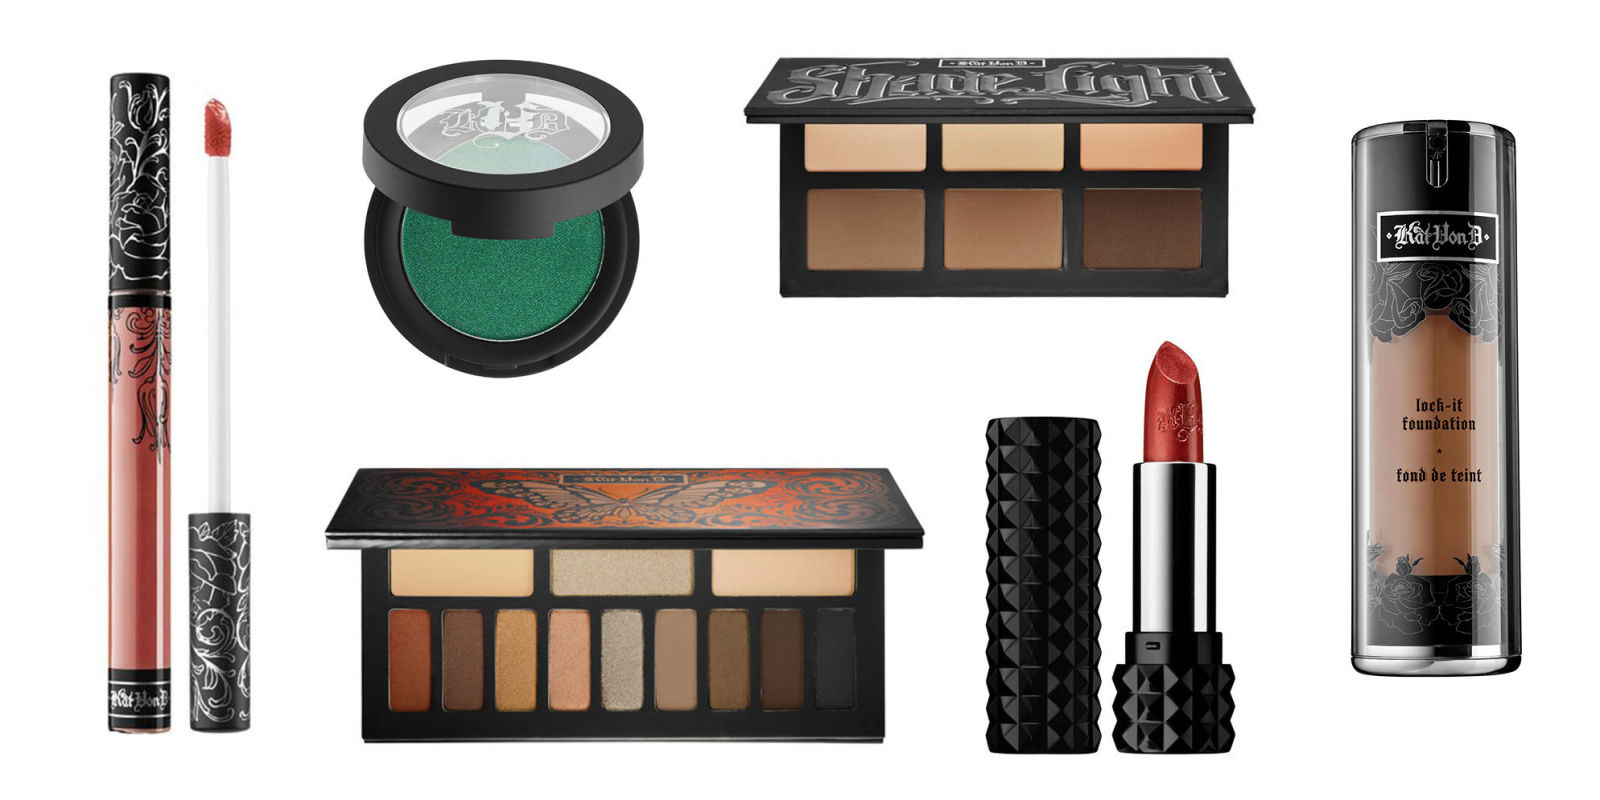 9 Best Kat Von D Makeup 2016 Kat Von D Foundation And Lipstick